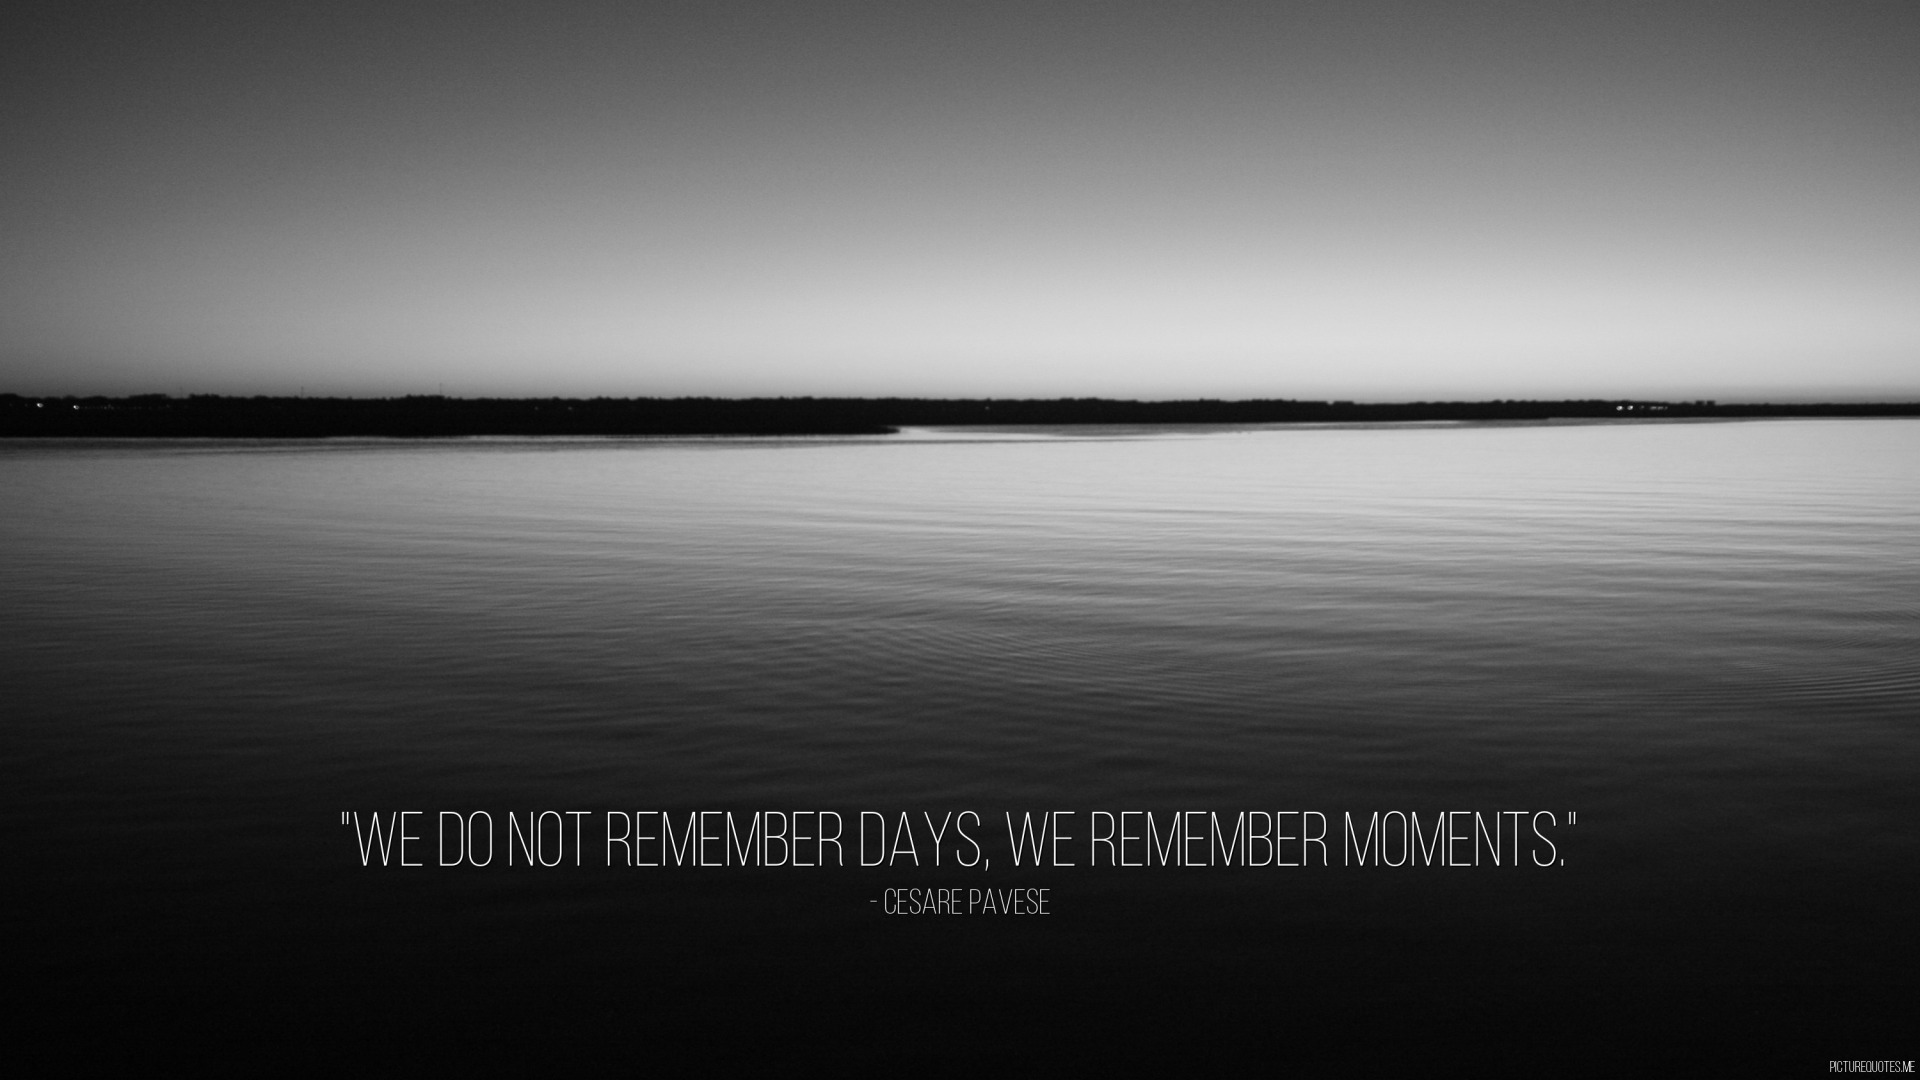 Make Your Own >> We do not remember days, we remember moments. - Cesare Pavese | id: 34